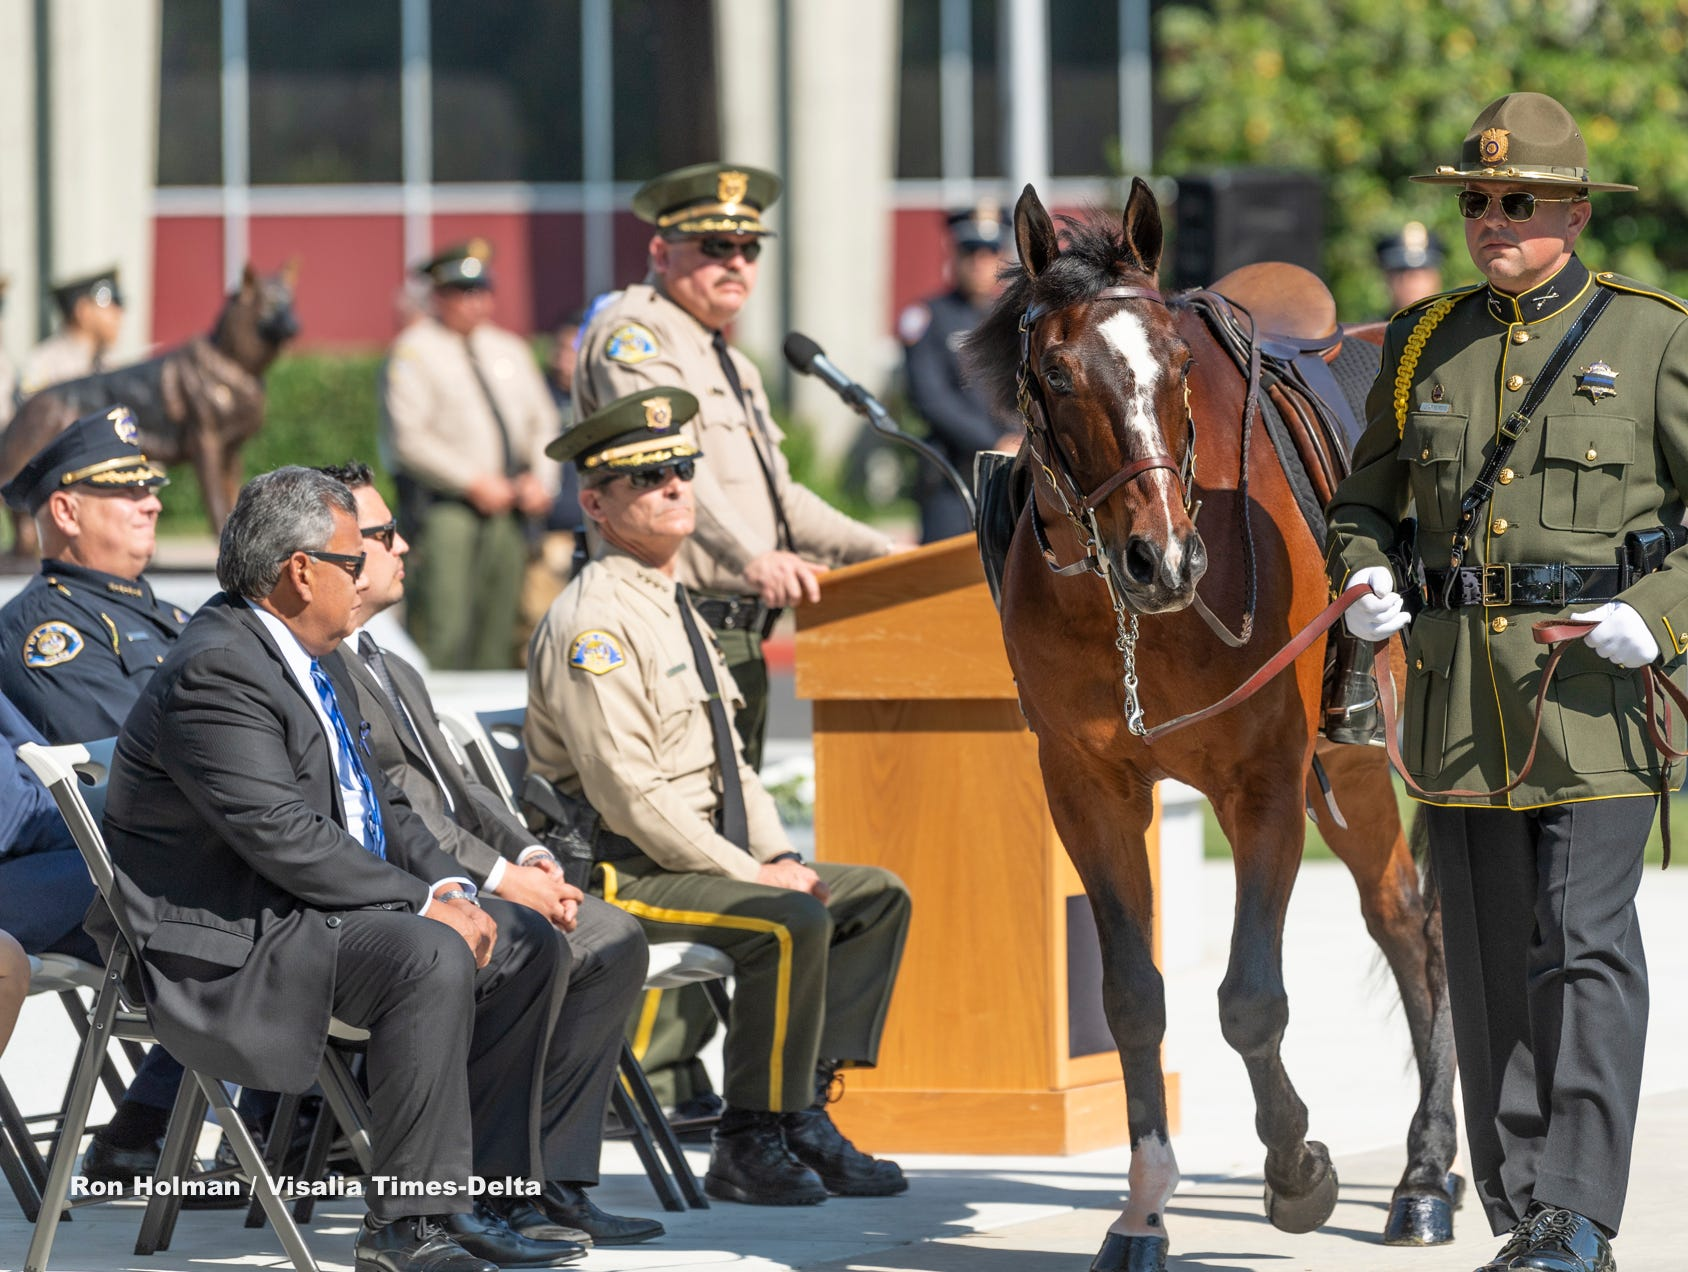 A riderless horse passes during the Tulare County Peace Officer Memorial Ceremony on Wednesday, May 8, 2019.